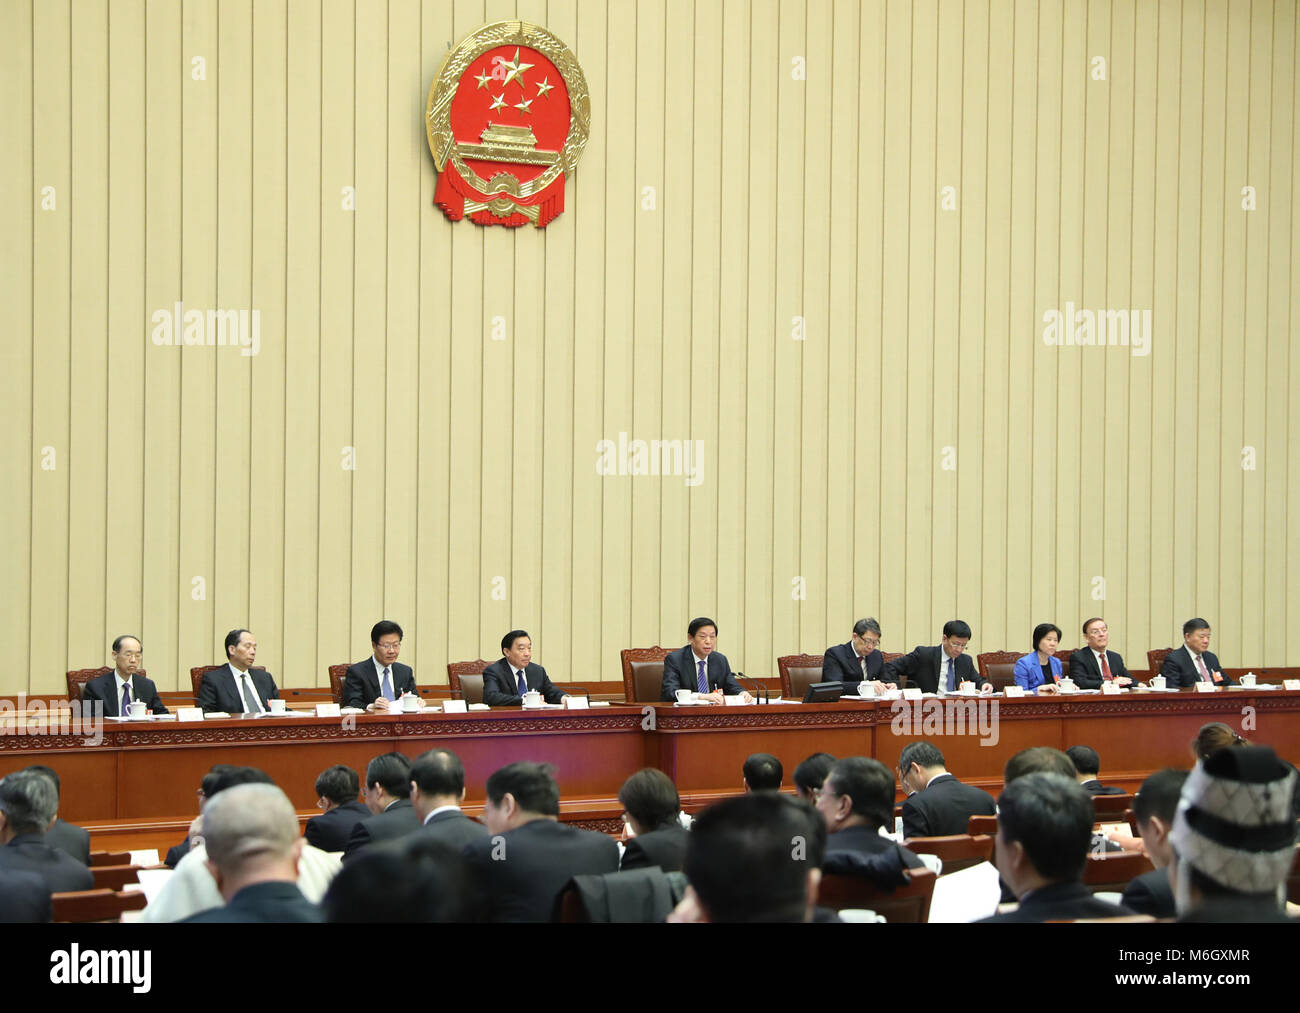 Beijing, China. 4th Mar, 2018. The first meeting of the presidium for the first session of the 13th National People's - Stock Image